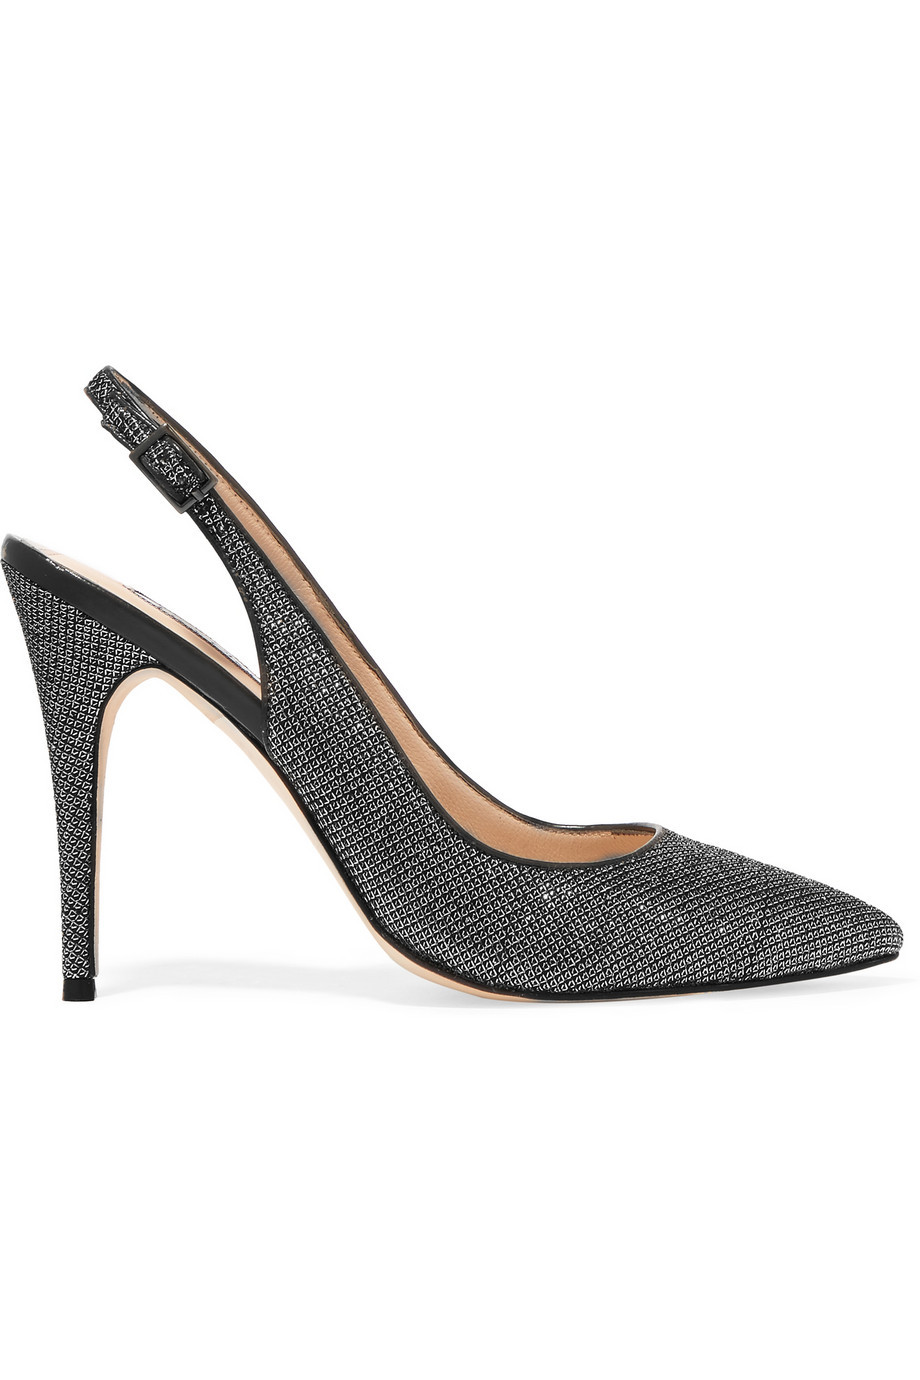 Tigers Eye Metallic Canvas Pumps Silver - predominant colour: charcoal; occasions: evening, occasion; material: fabric; heel height: high; heel: stiletto; toe: pointed toe; style: slingbacks; finish: metallic; pattern: plain; season: s/s 2016; wardrobe: event